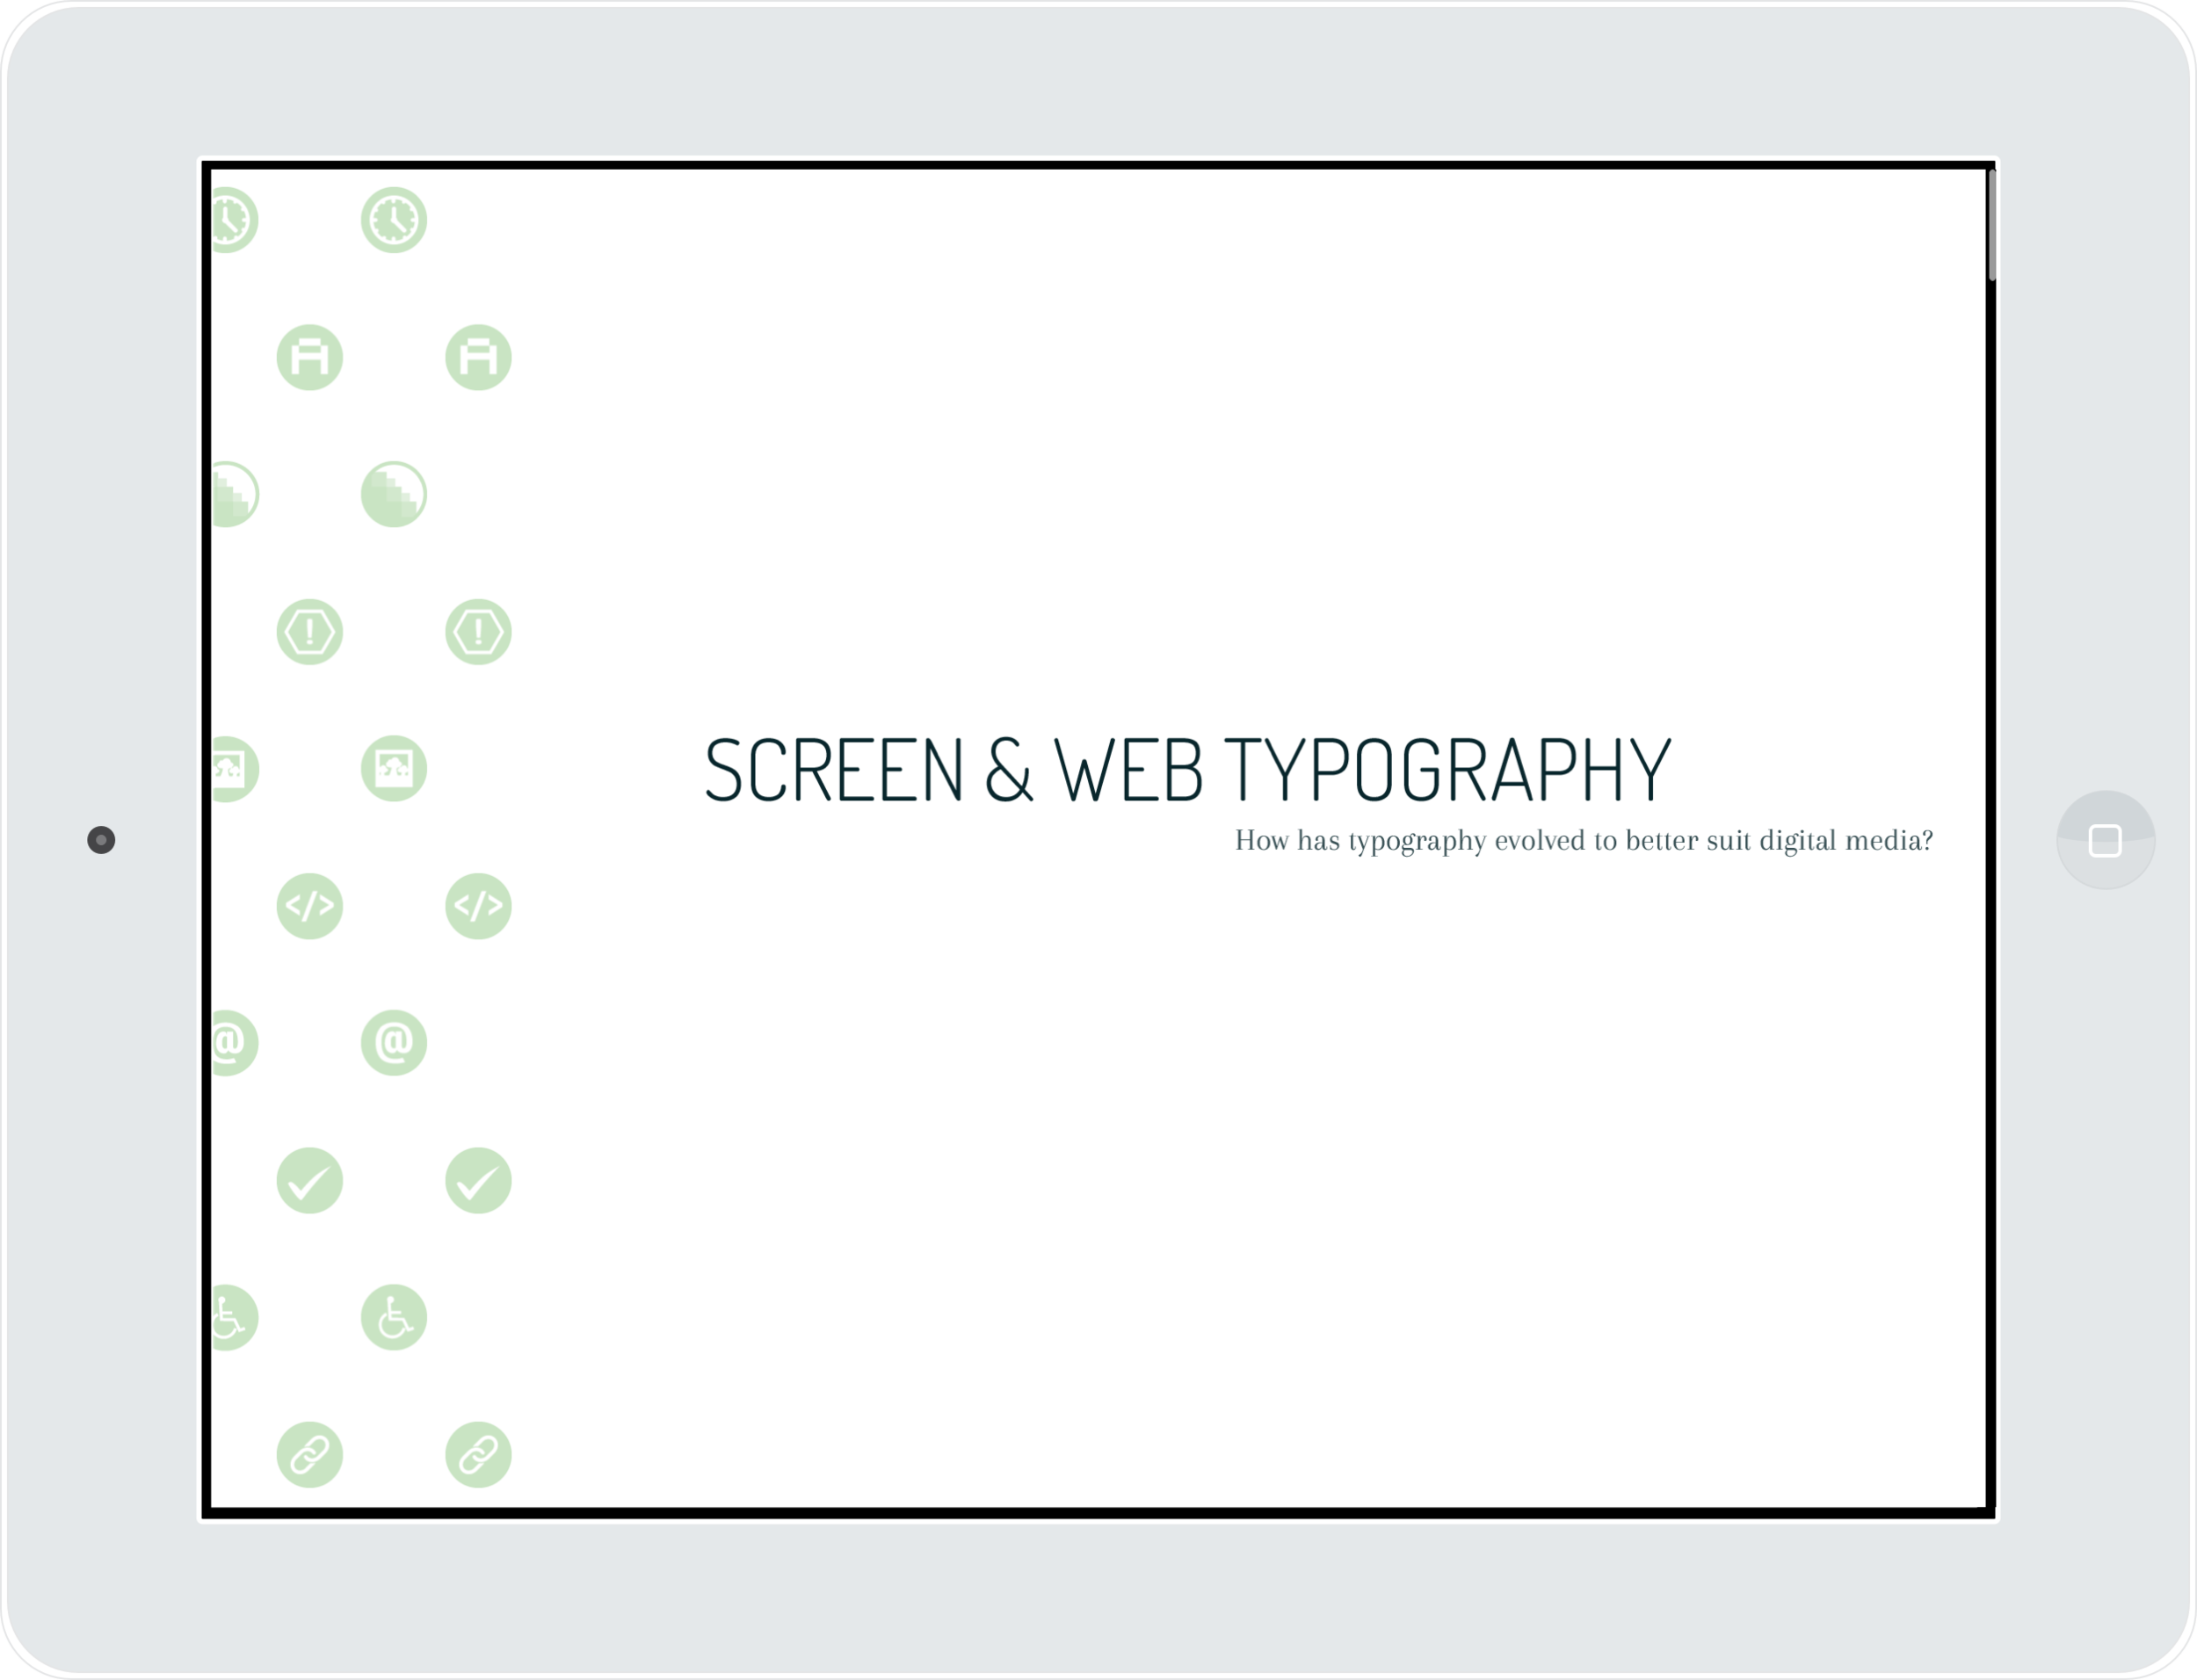 ^ The publication gives a brief overview of ten areas relating to the development of typography for the screen and web. Each section was given its own unique icon to guide readers through the publication.